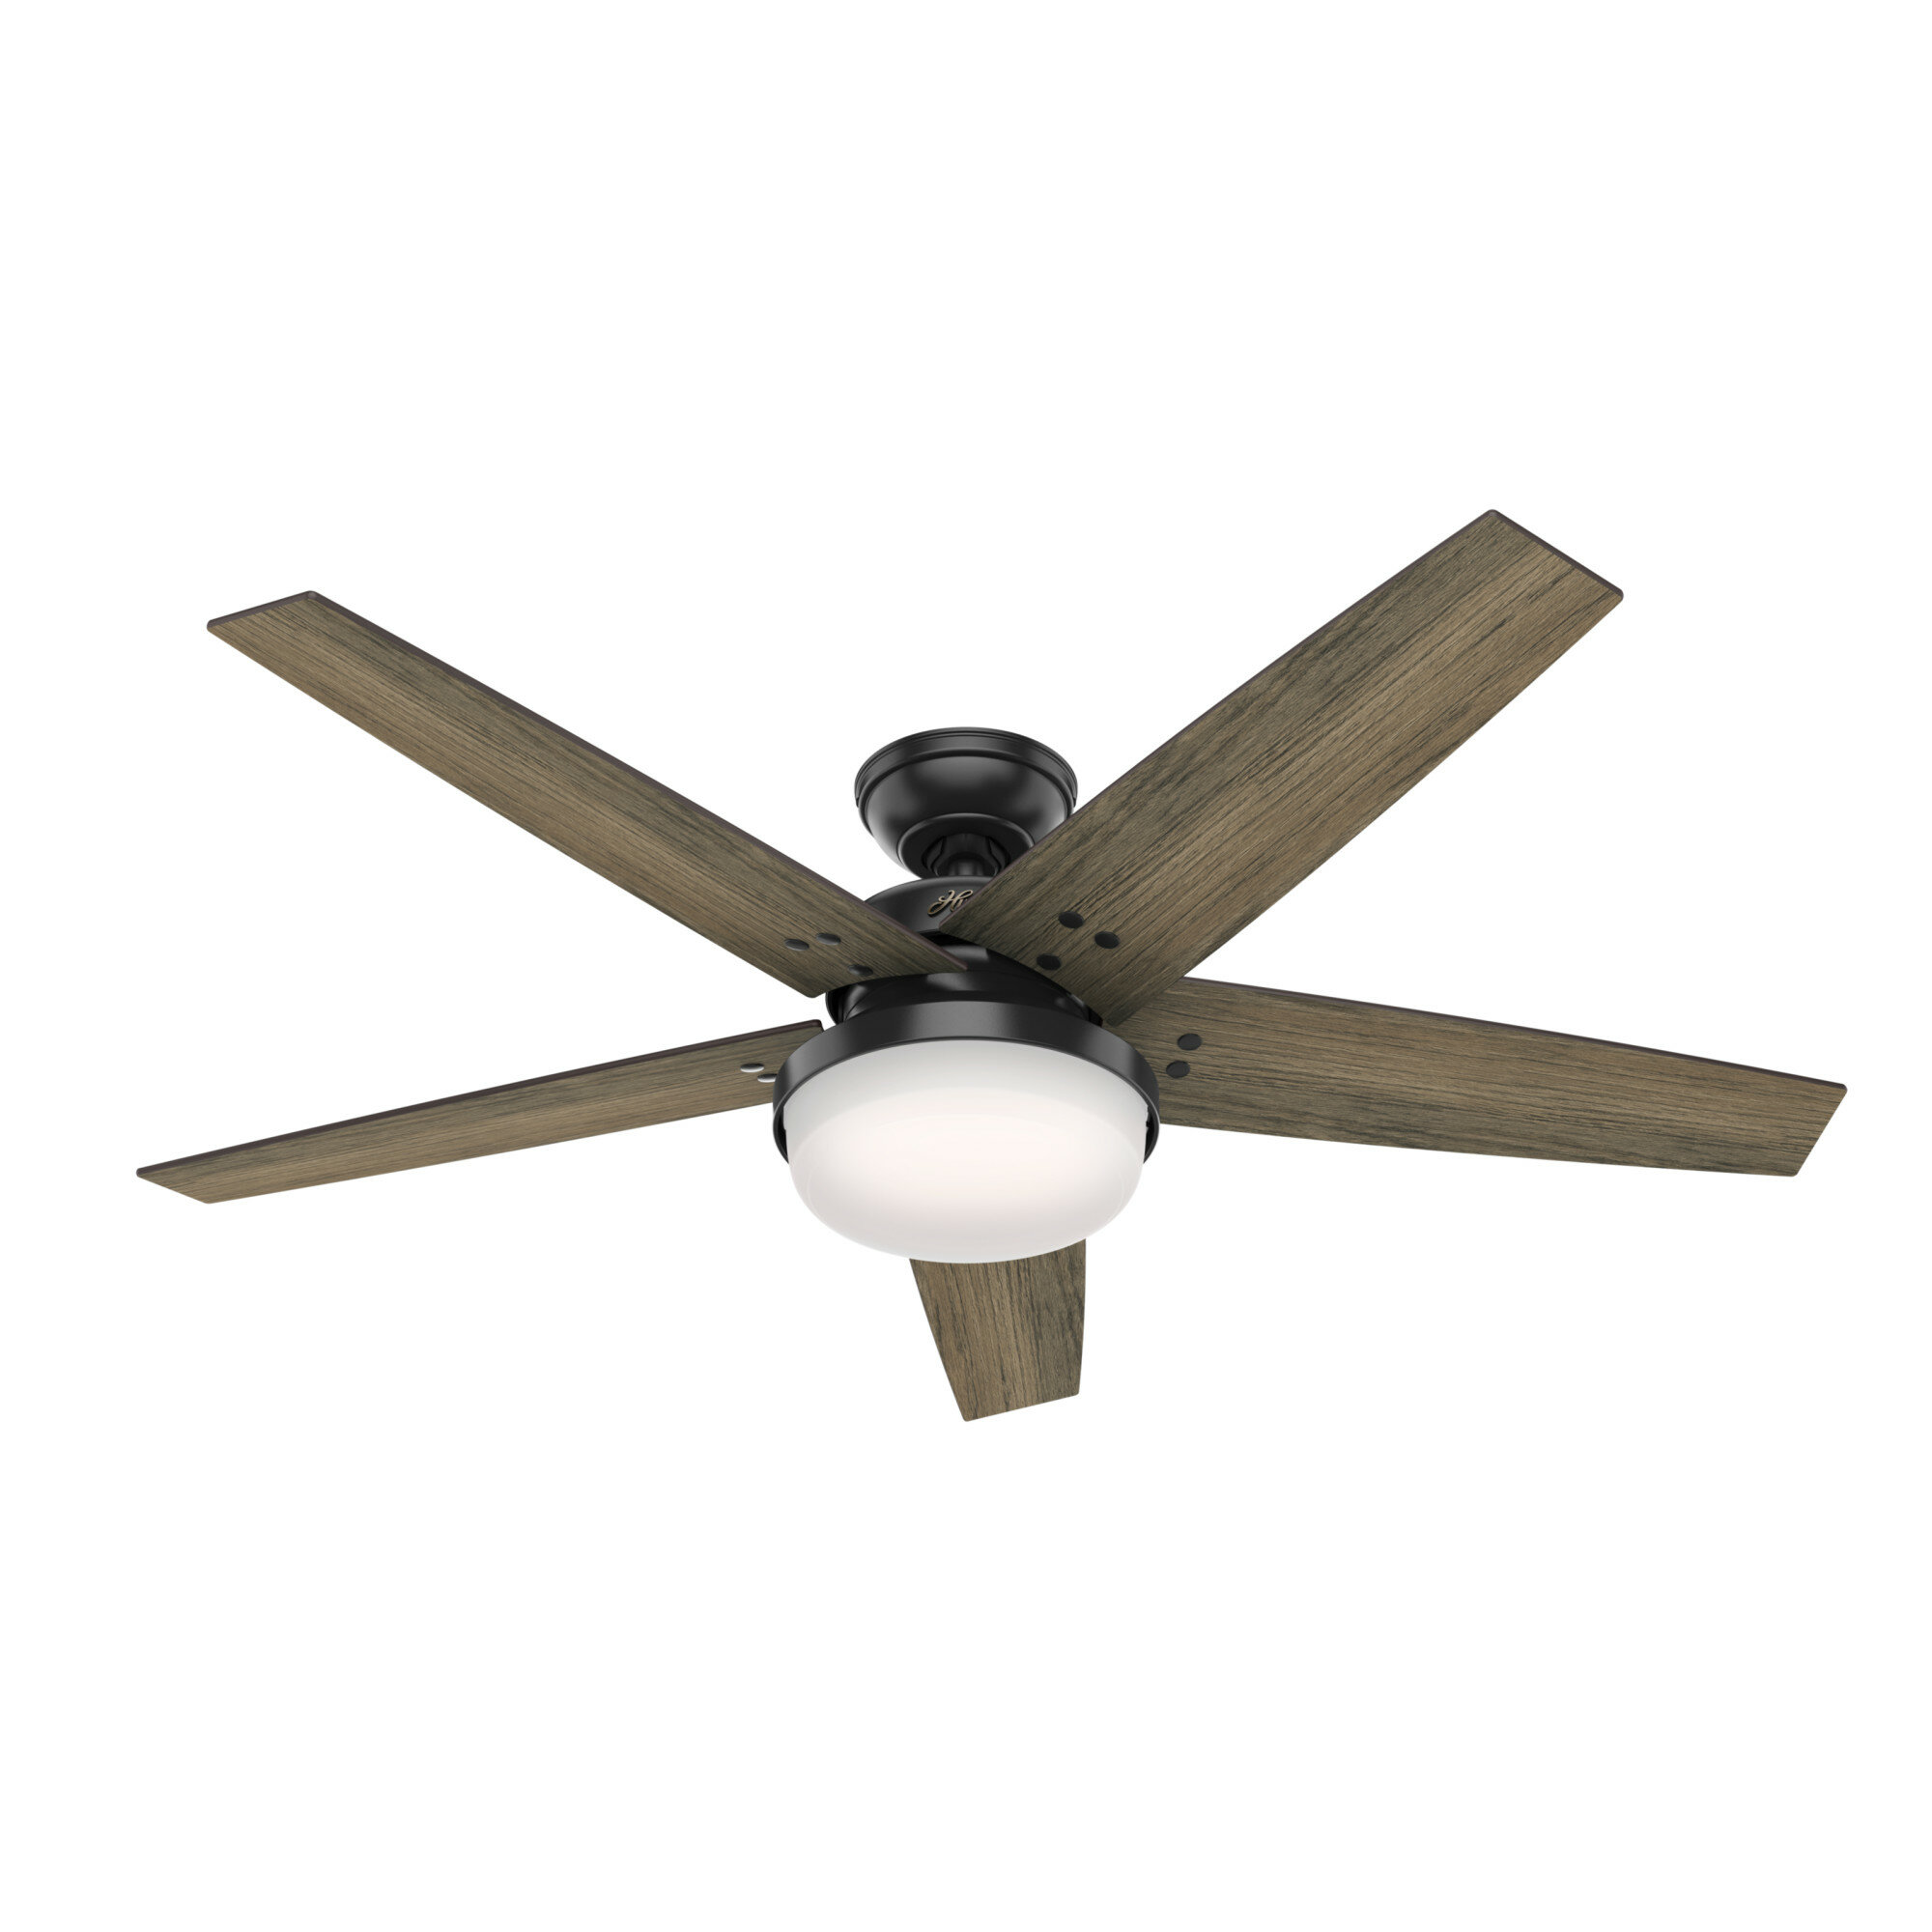 Hunter Fan 52 Brenham 5 Blade Standard Ceiling Fan With Remote Control And Light Kit Included Reviews Wayfair